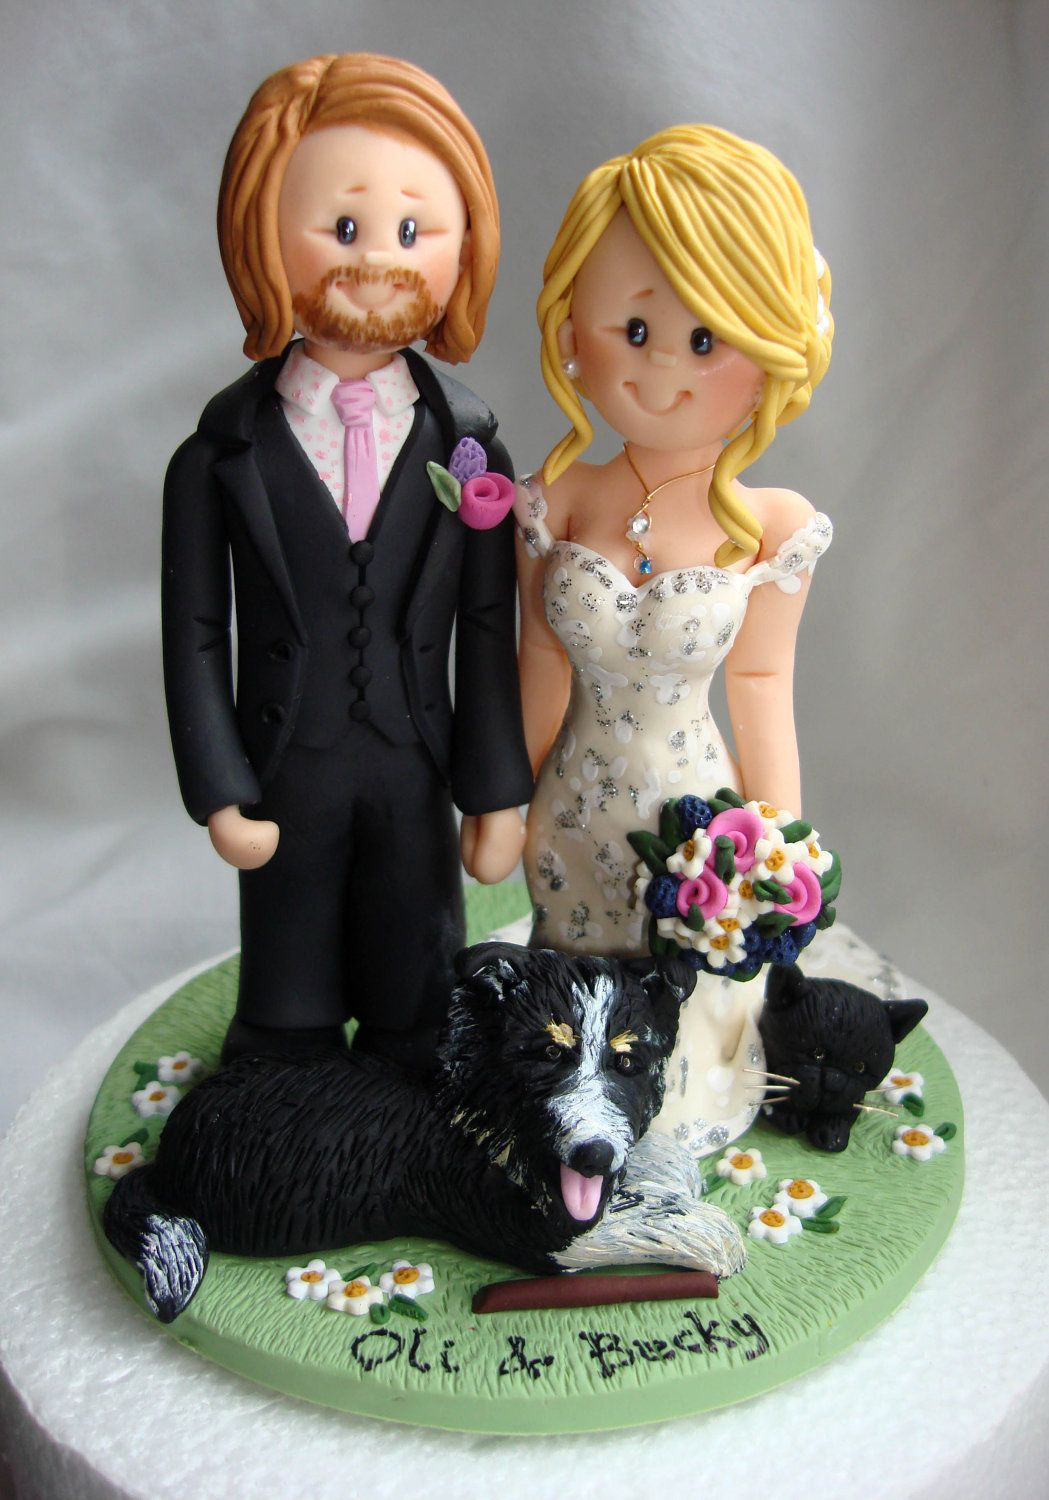 Personalised bride and groom wedding cake topper via etsy